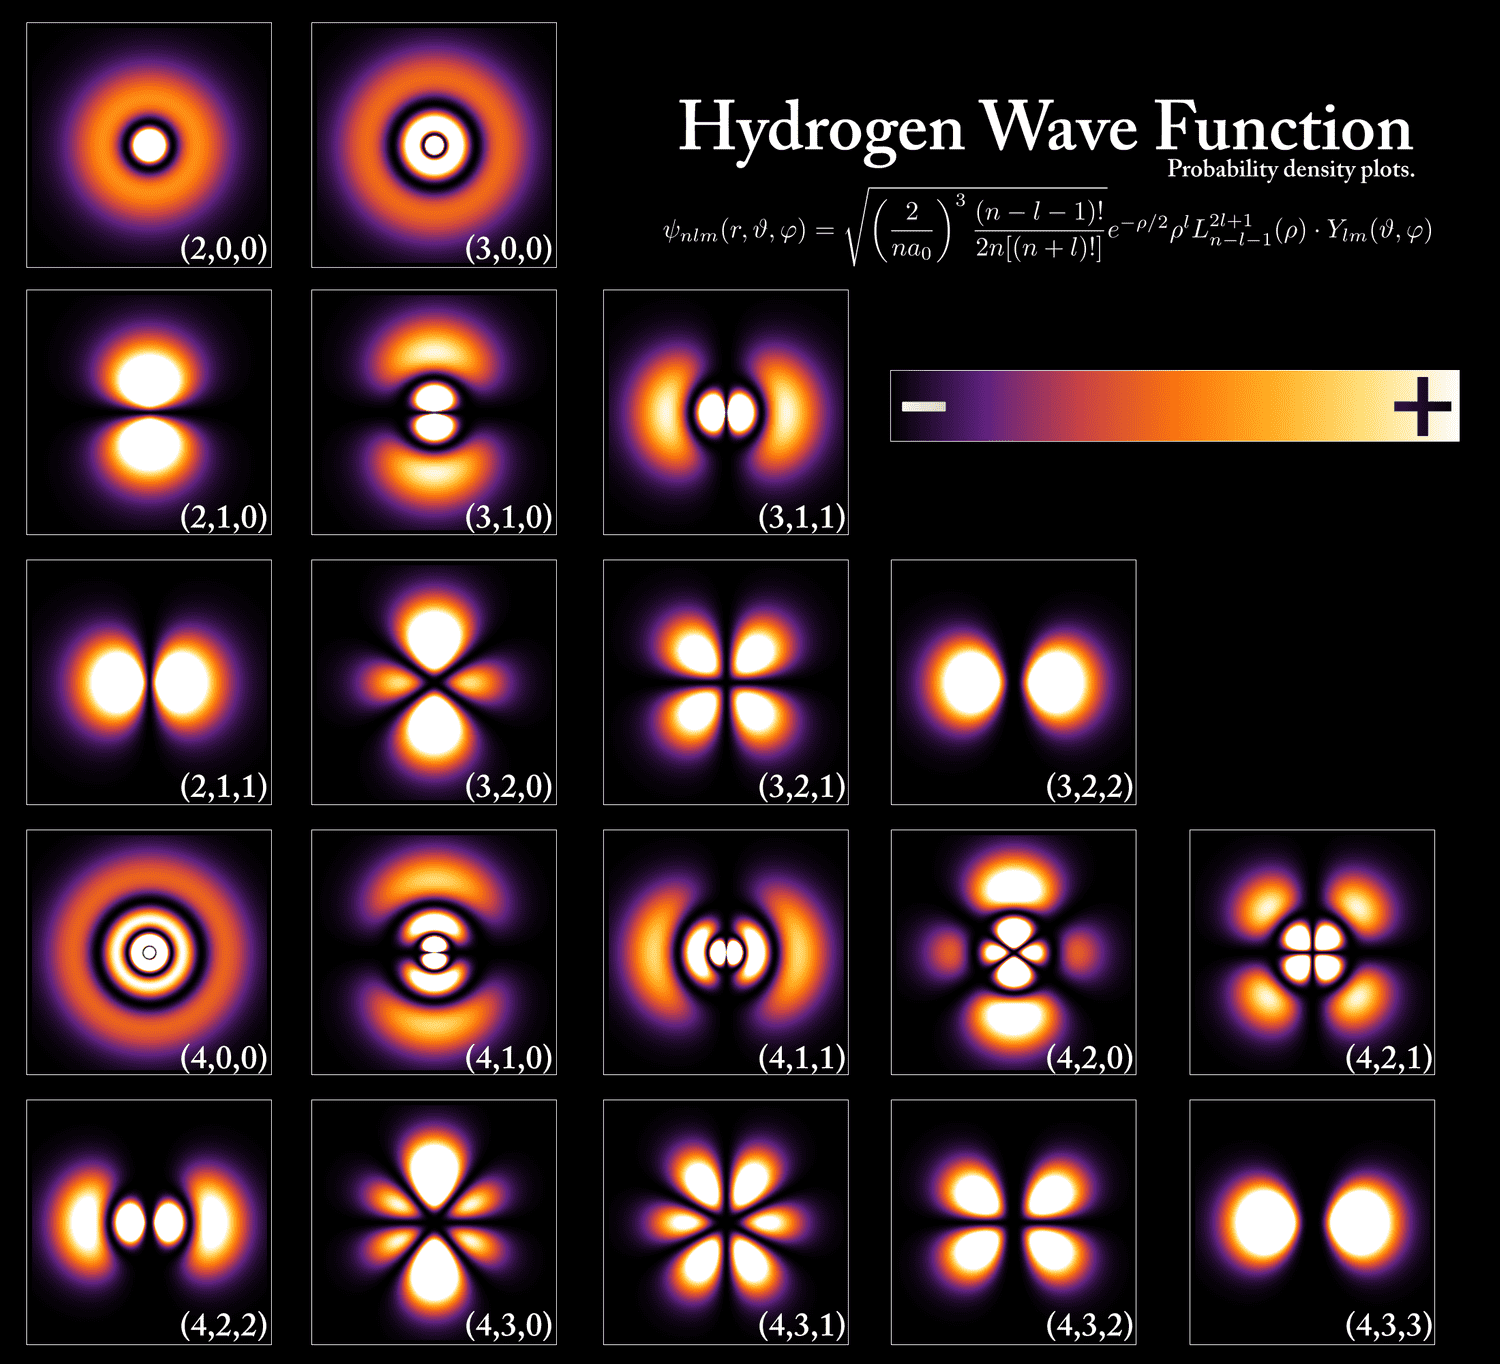 hydrogen-wave-functions